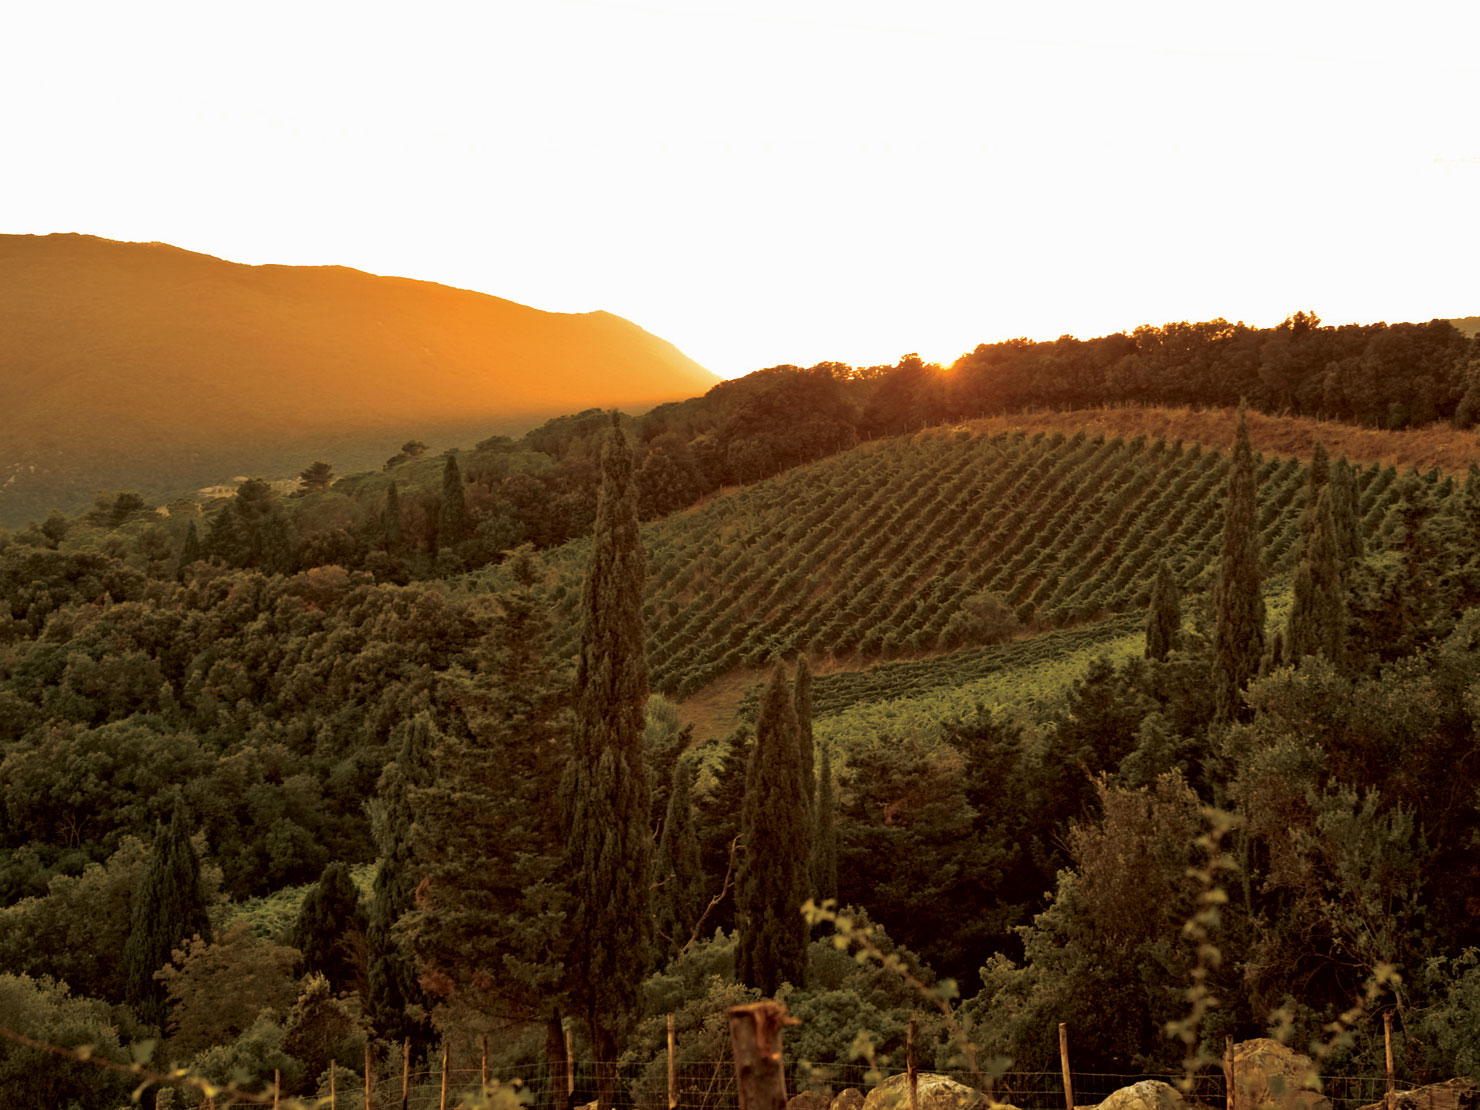 Italy Unfiltered: A Week of Food and Drink With the Country's Best Natural Winemakers